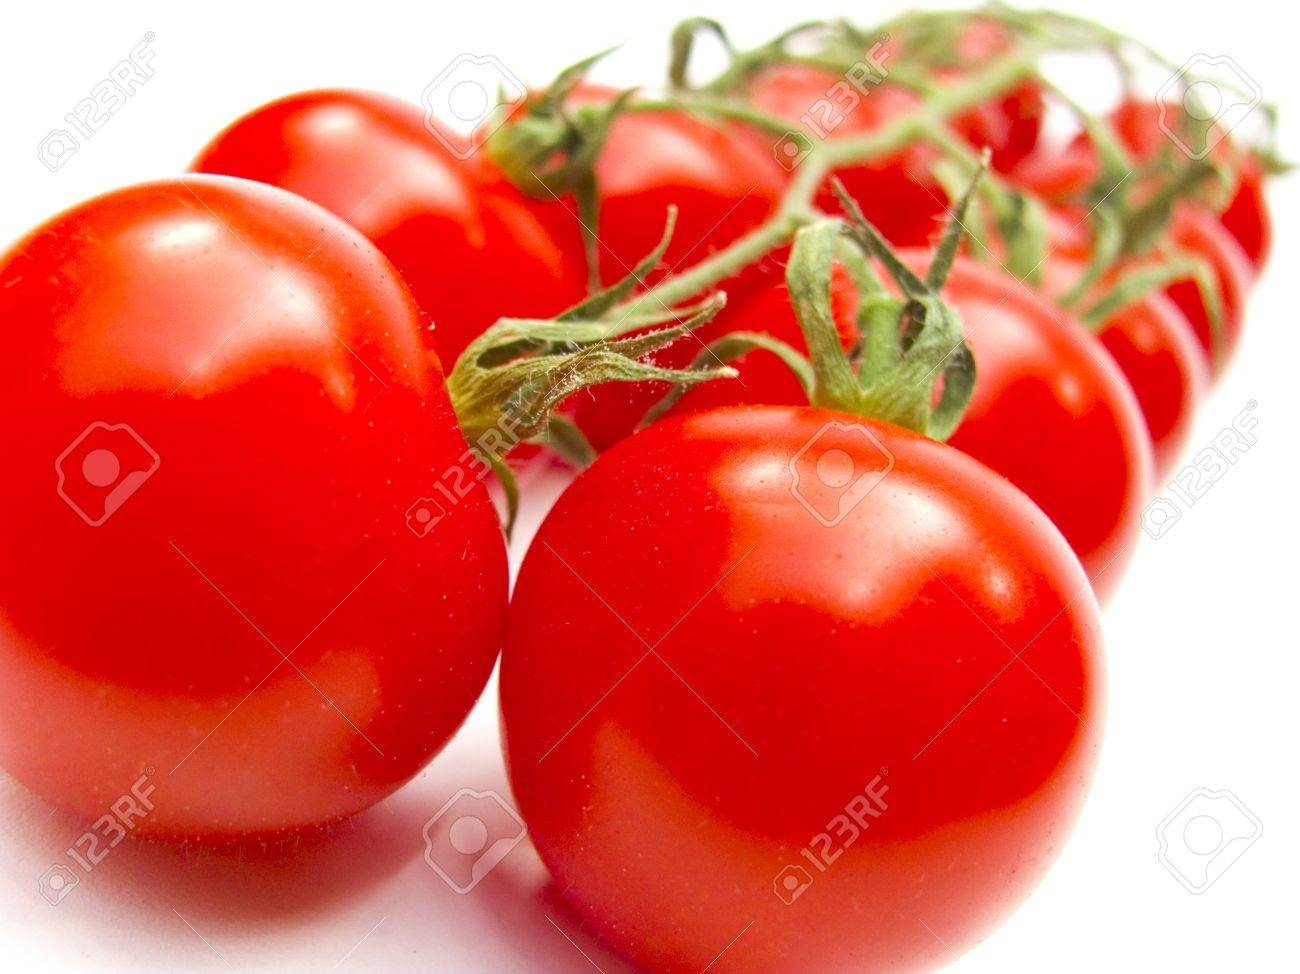 fresh red tomatoes isolated on white background - 9671957